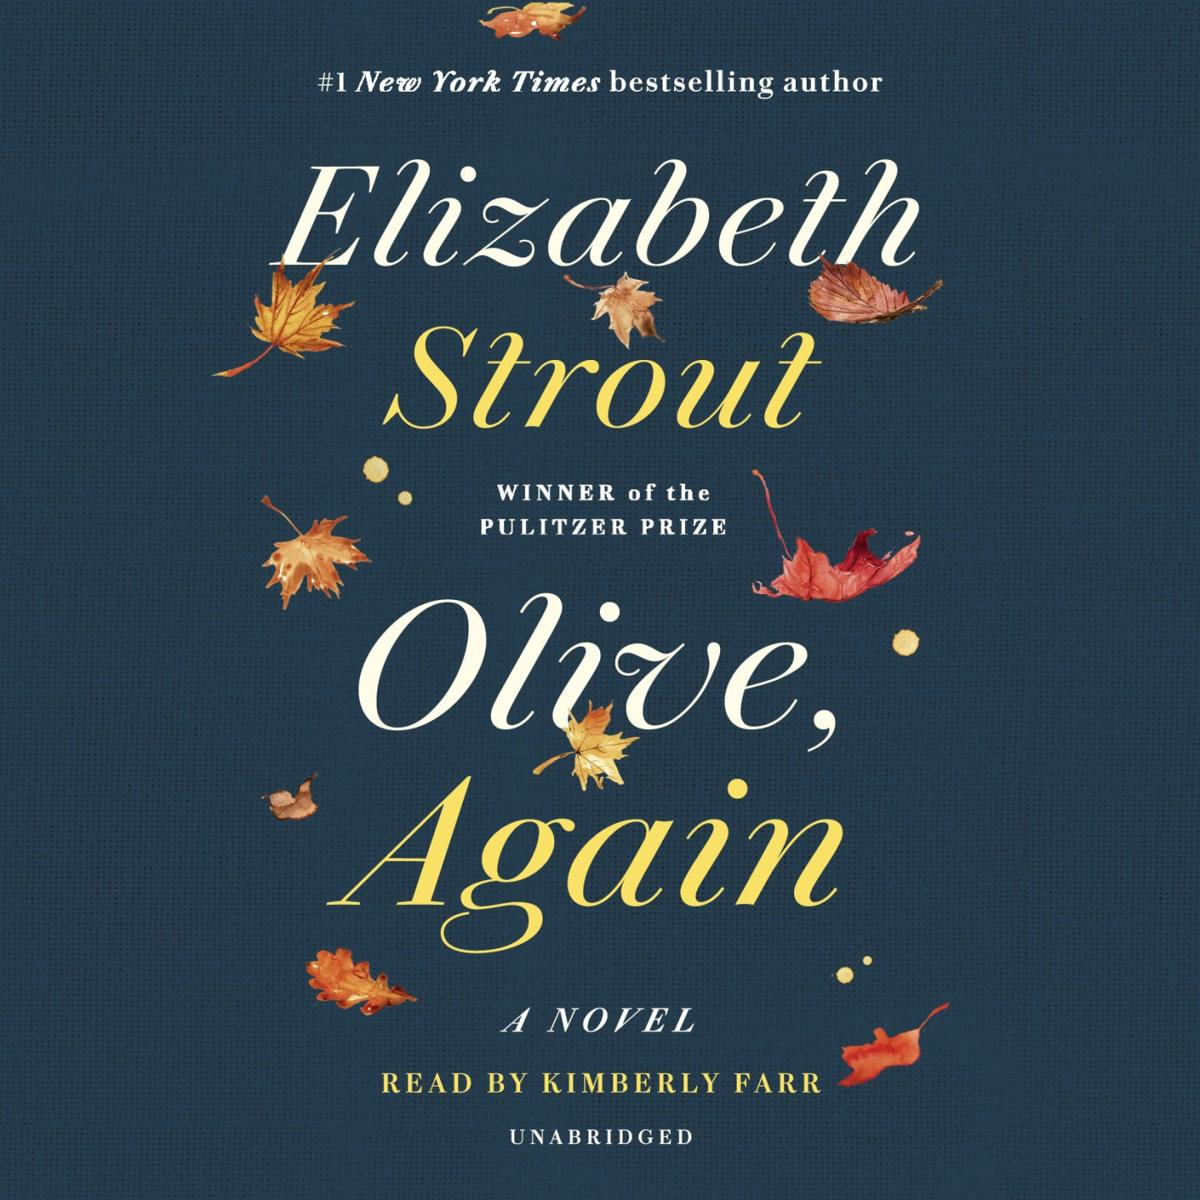 Books to beat boredom on your Thanksgiving drive